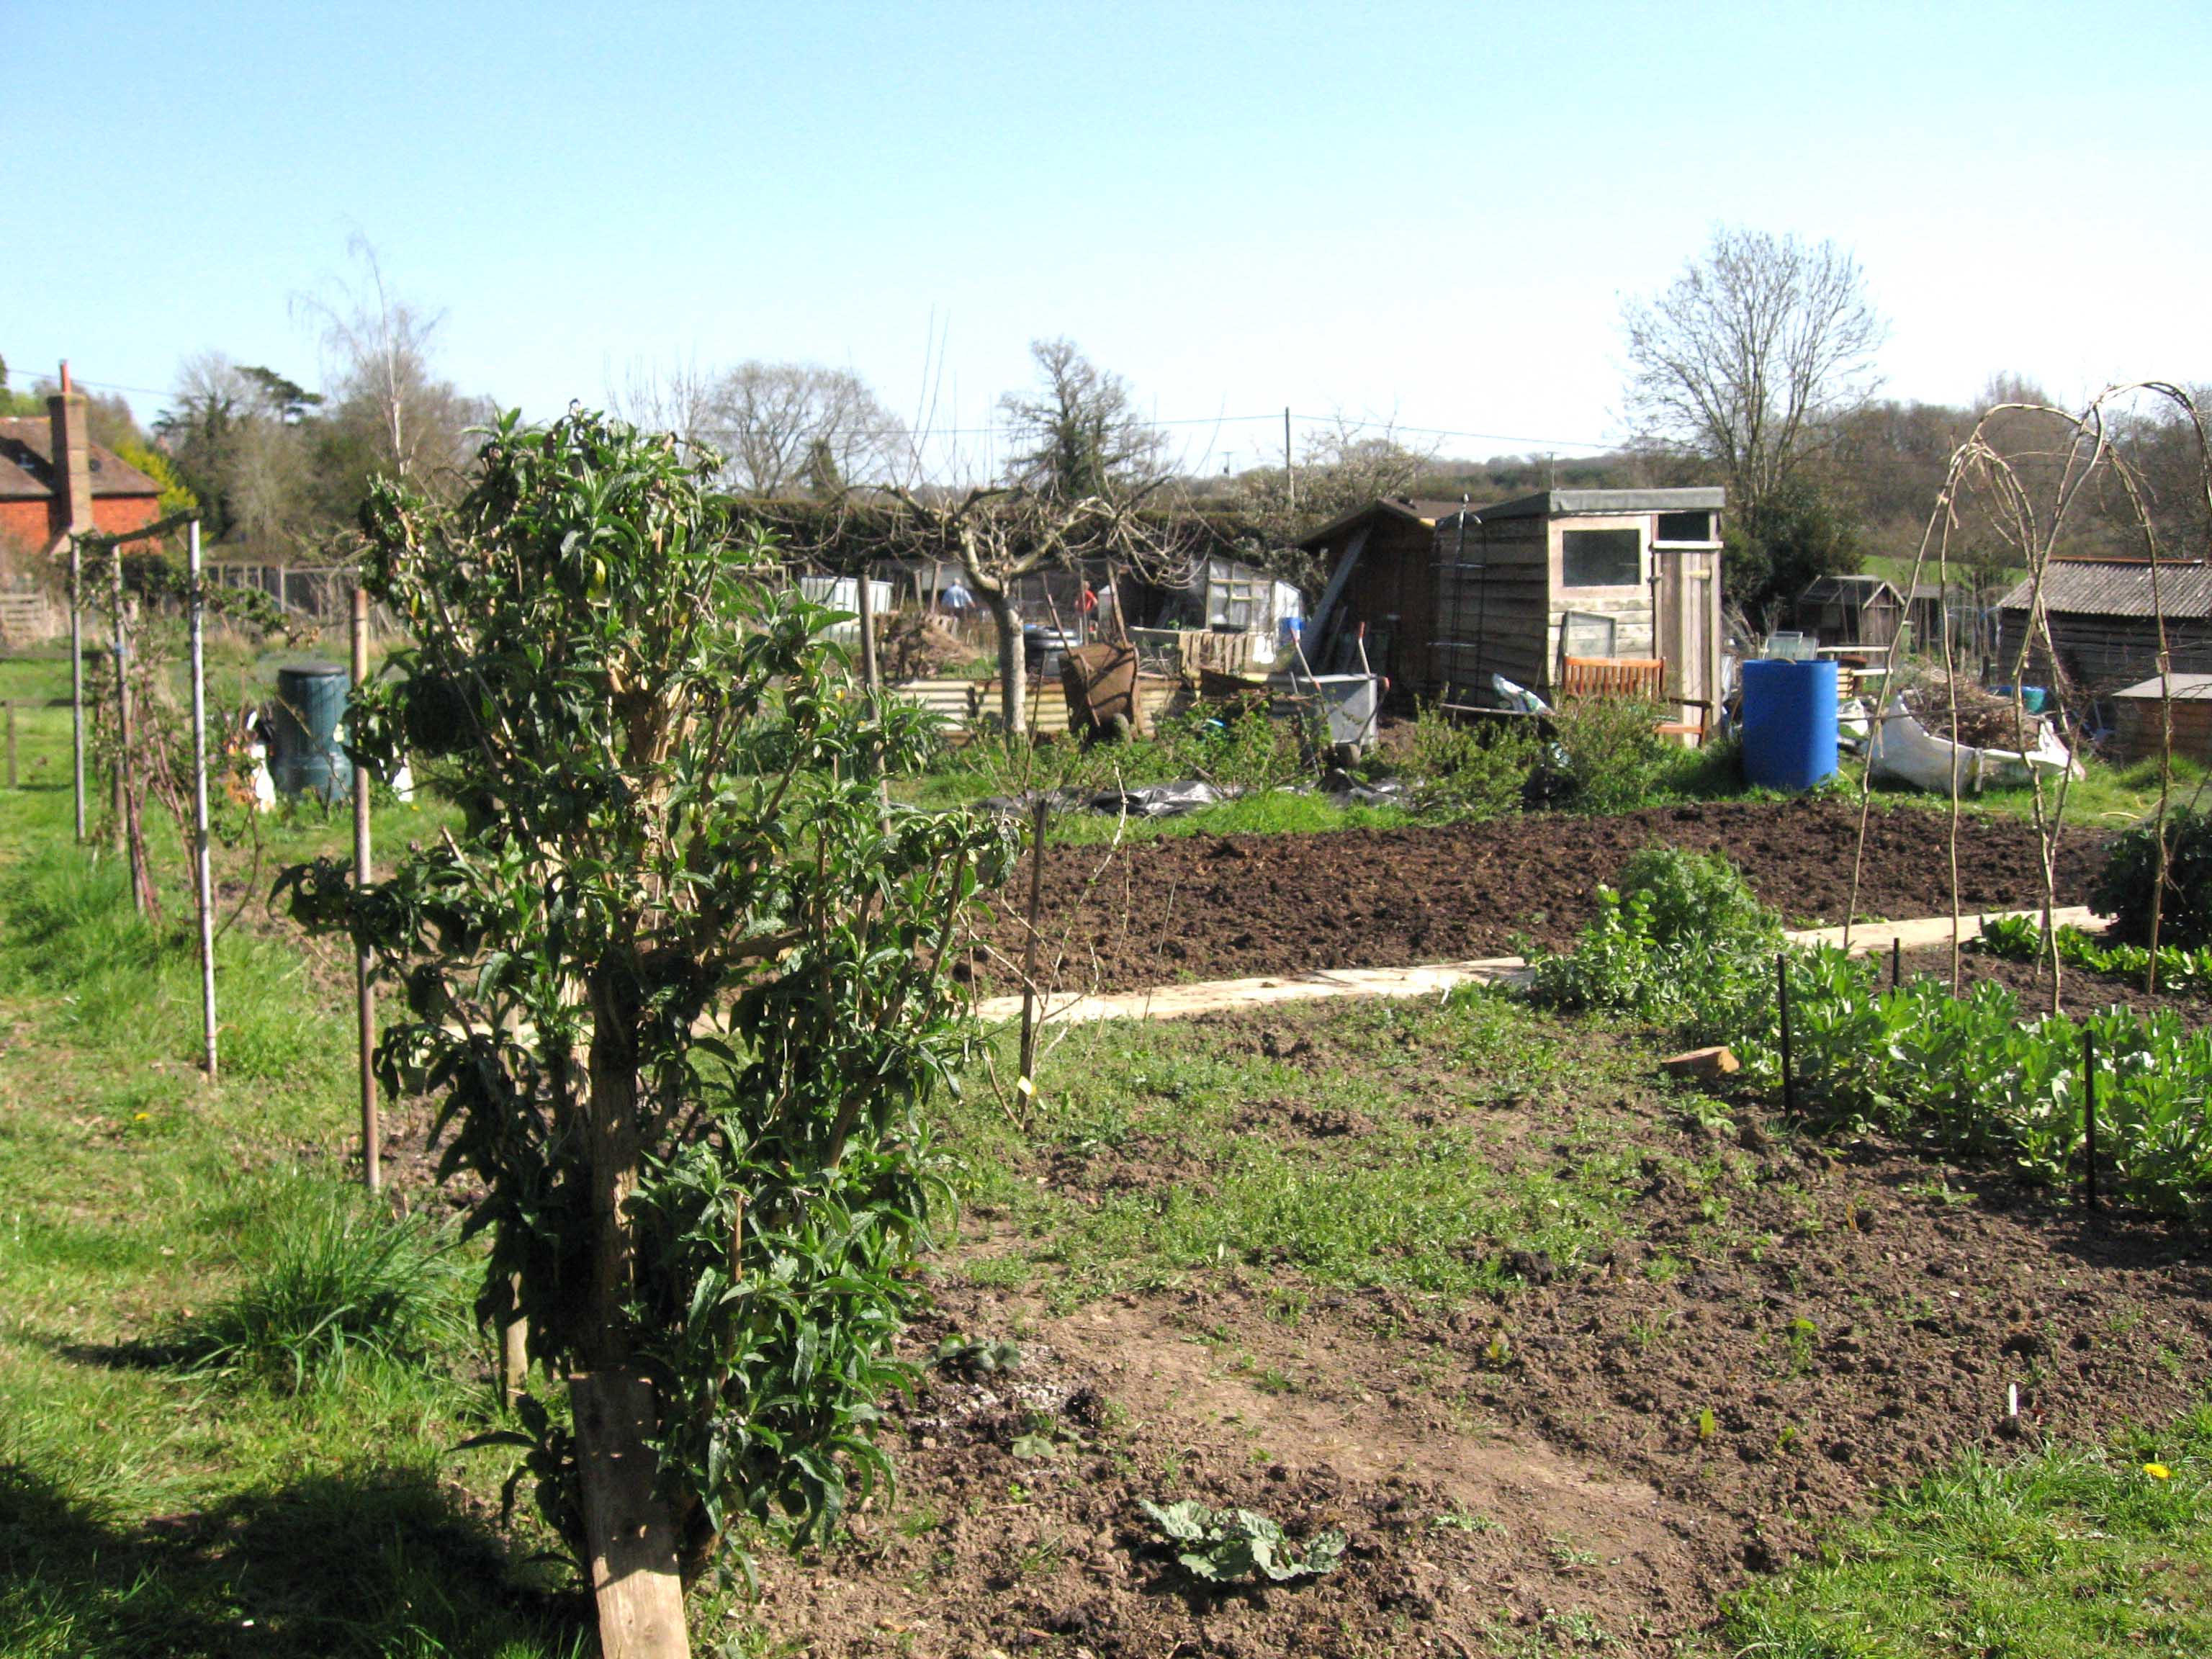 Allotment plots being cultivated